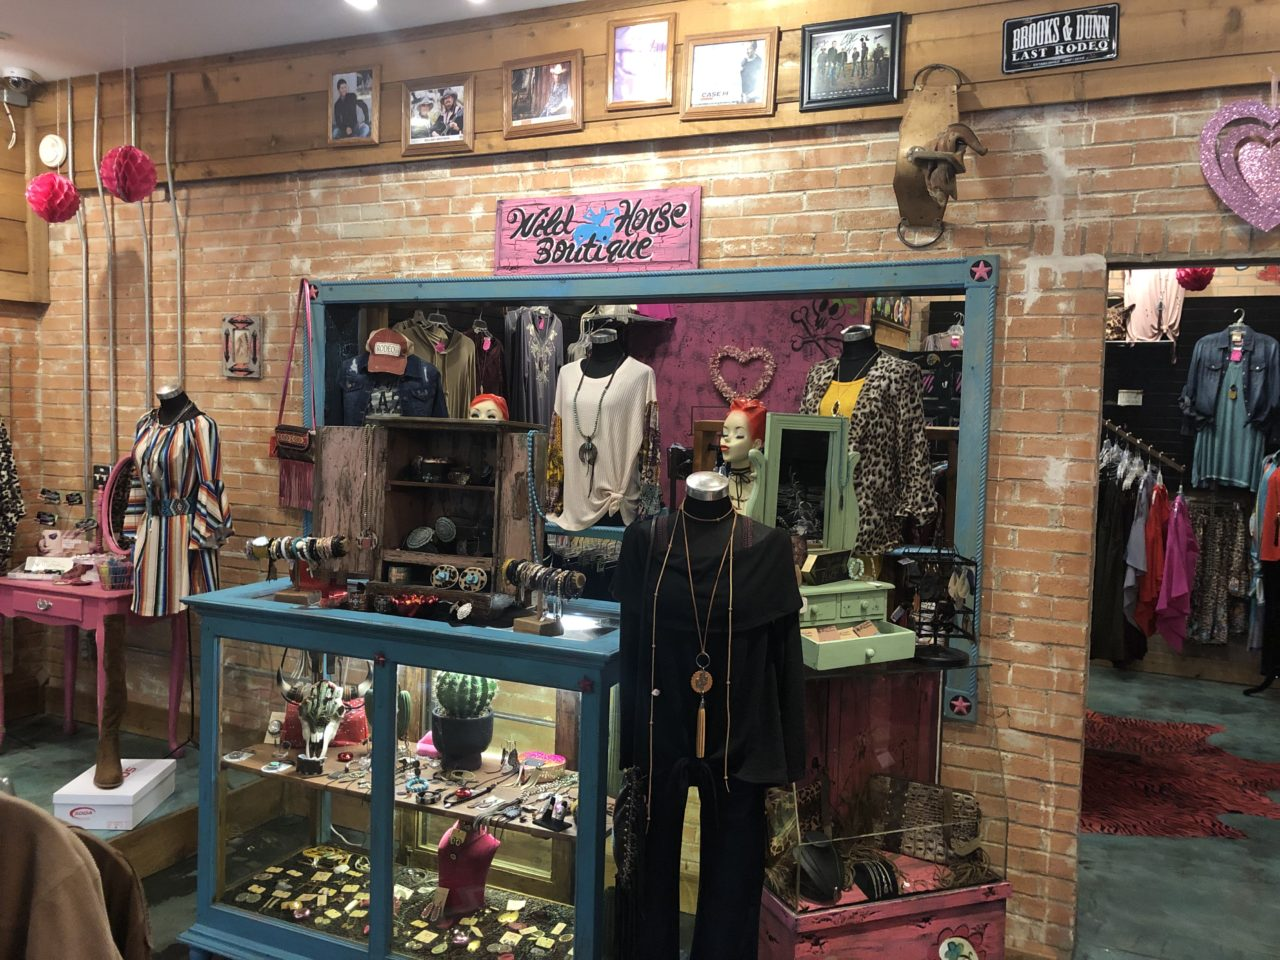 Wild Horse Boutique wall sign, sales floor  with dresses jewelry and clothing